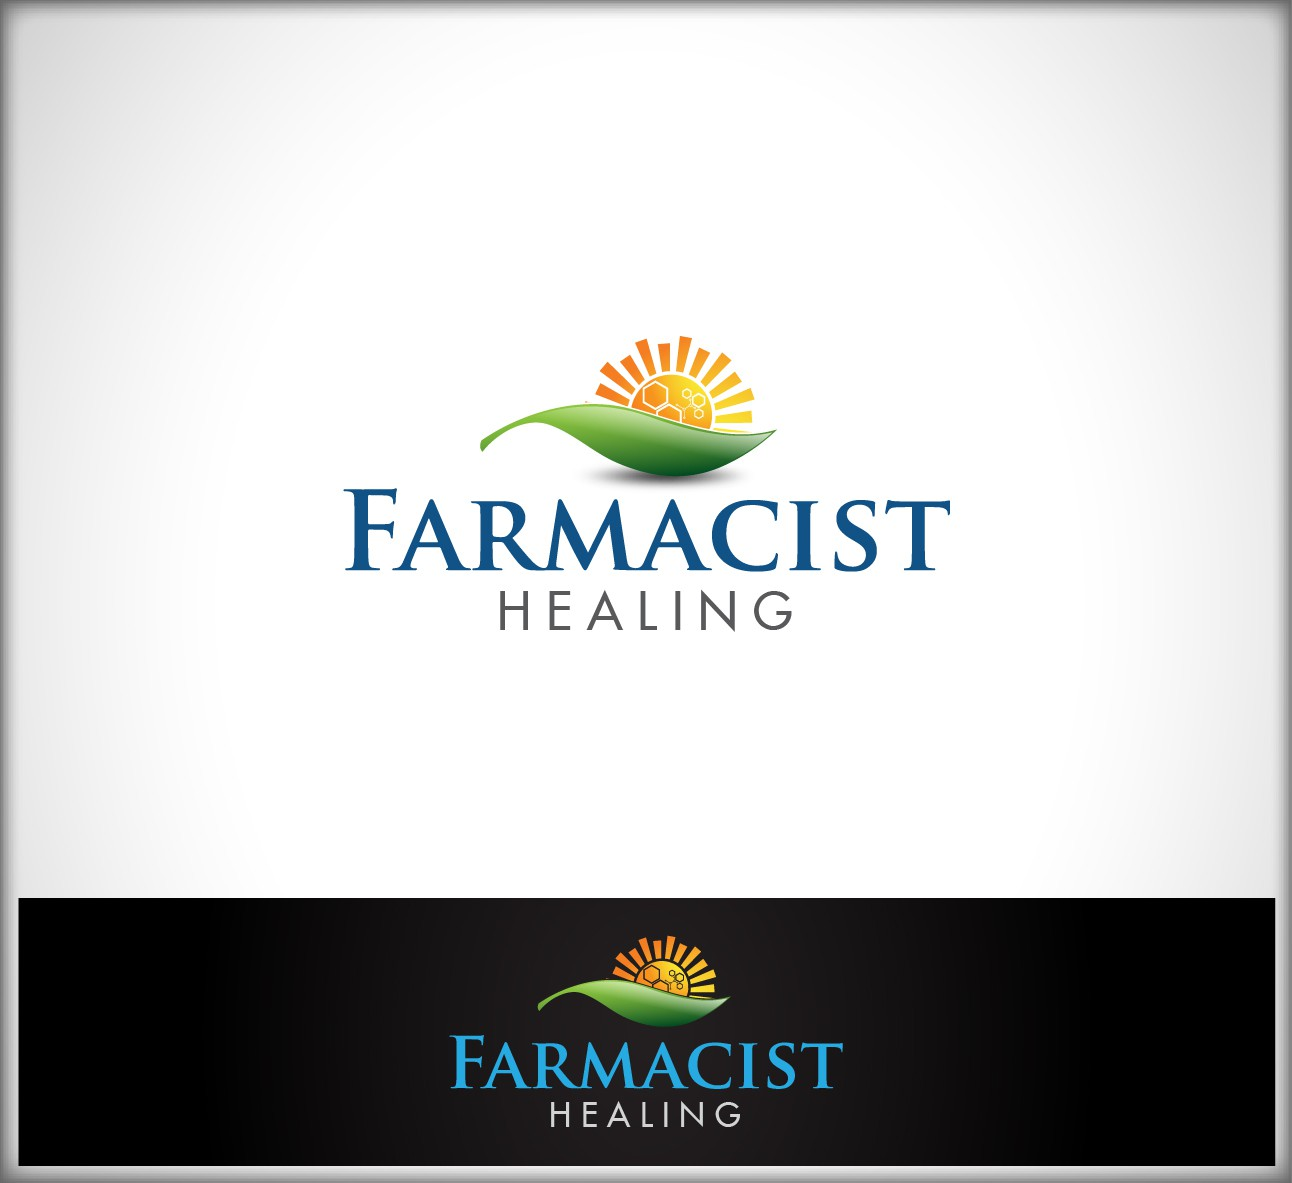 New logo wanted for Farmacist Healing